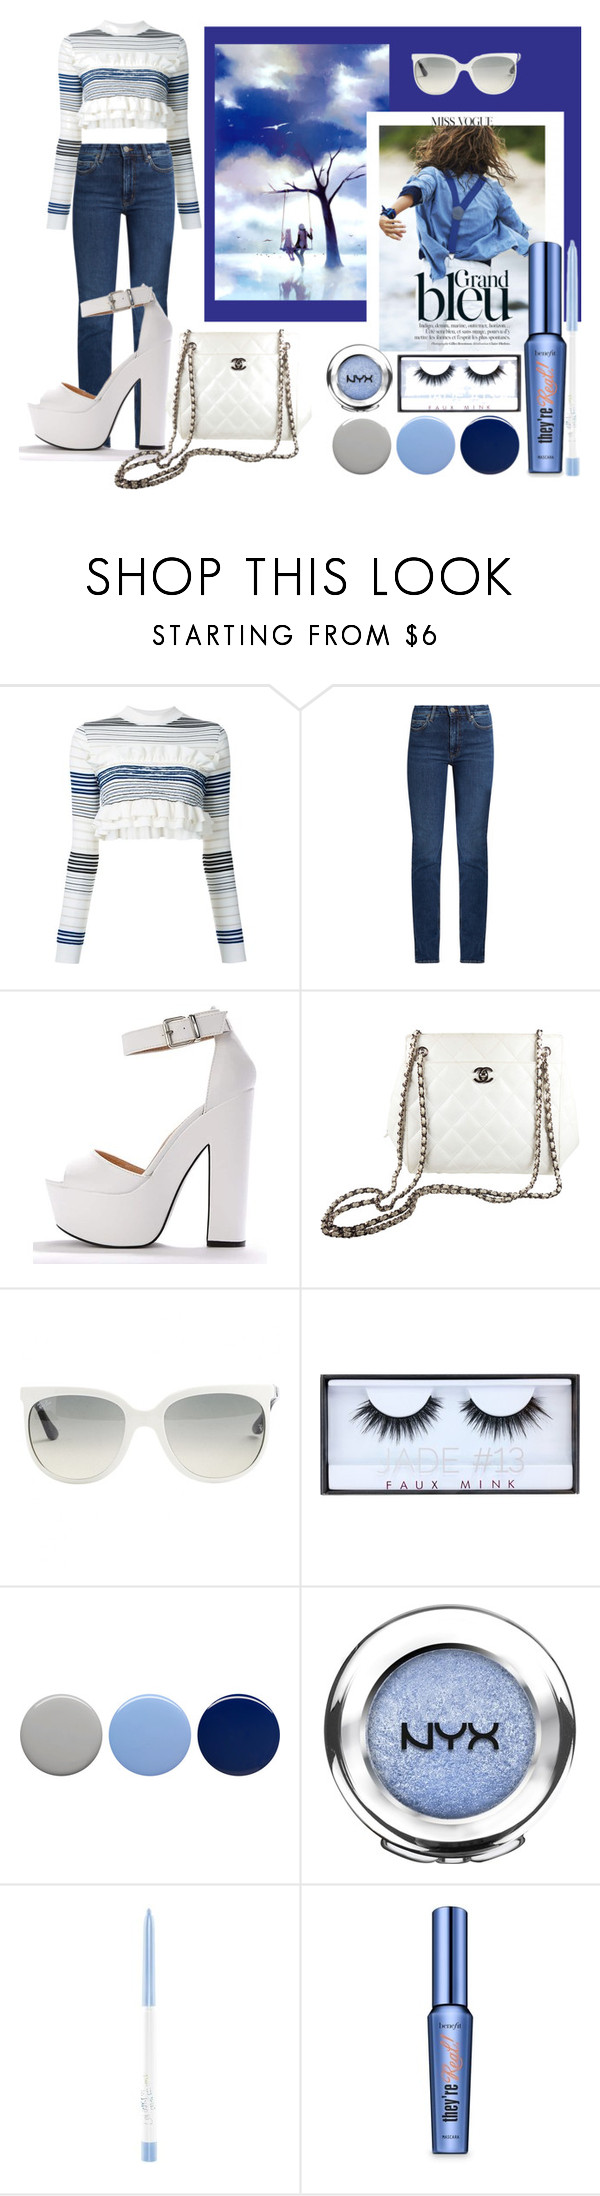 """""""Stripes And Frills!"""" by lheijl ❤ liked on Polyvore featuring GE, STELLA McCARTNEY, M.i.h Jeans, Chanel, Ray-Ban, Huda Beauty, Burberry, NYX and Benefit"""